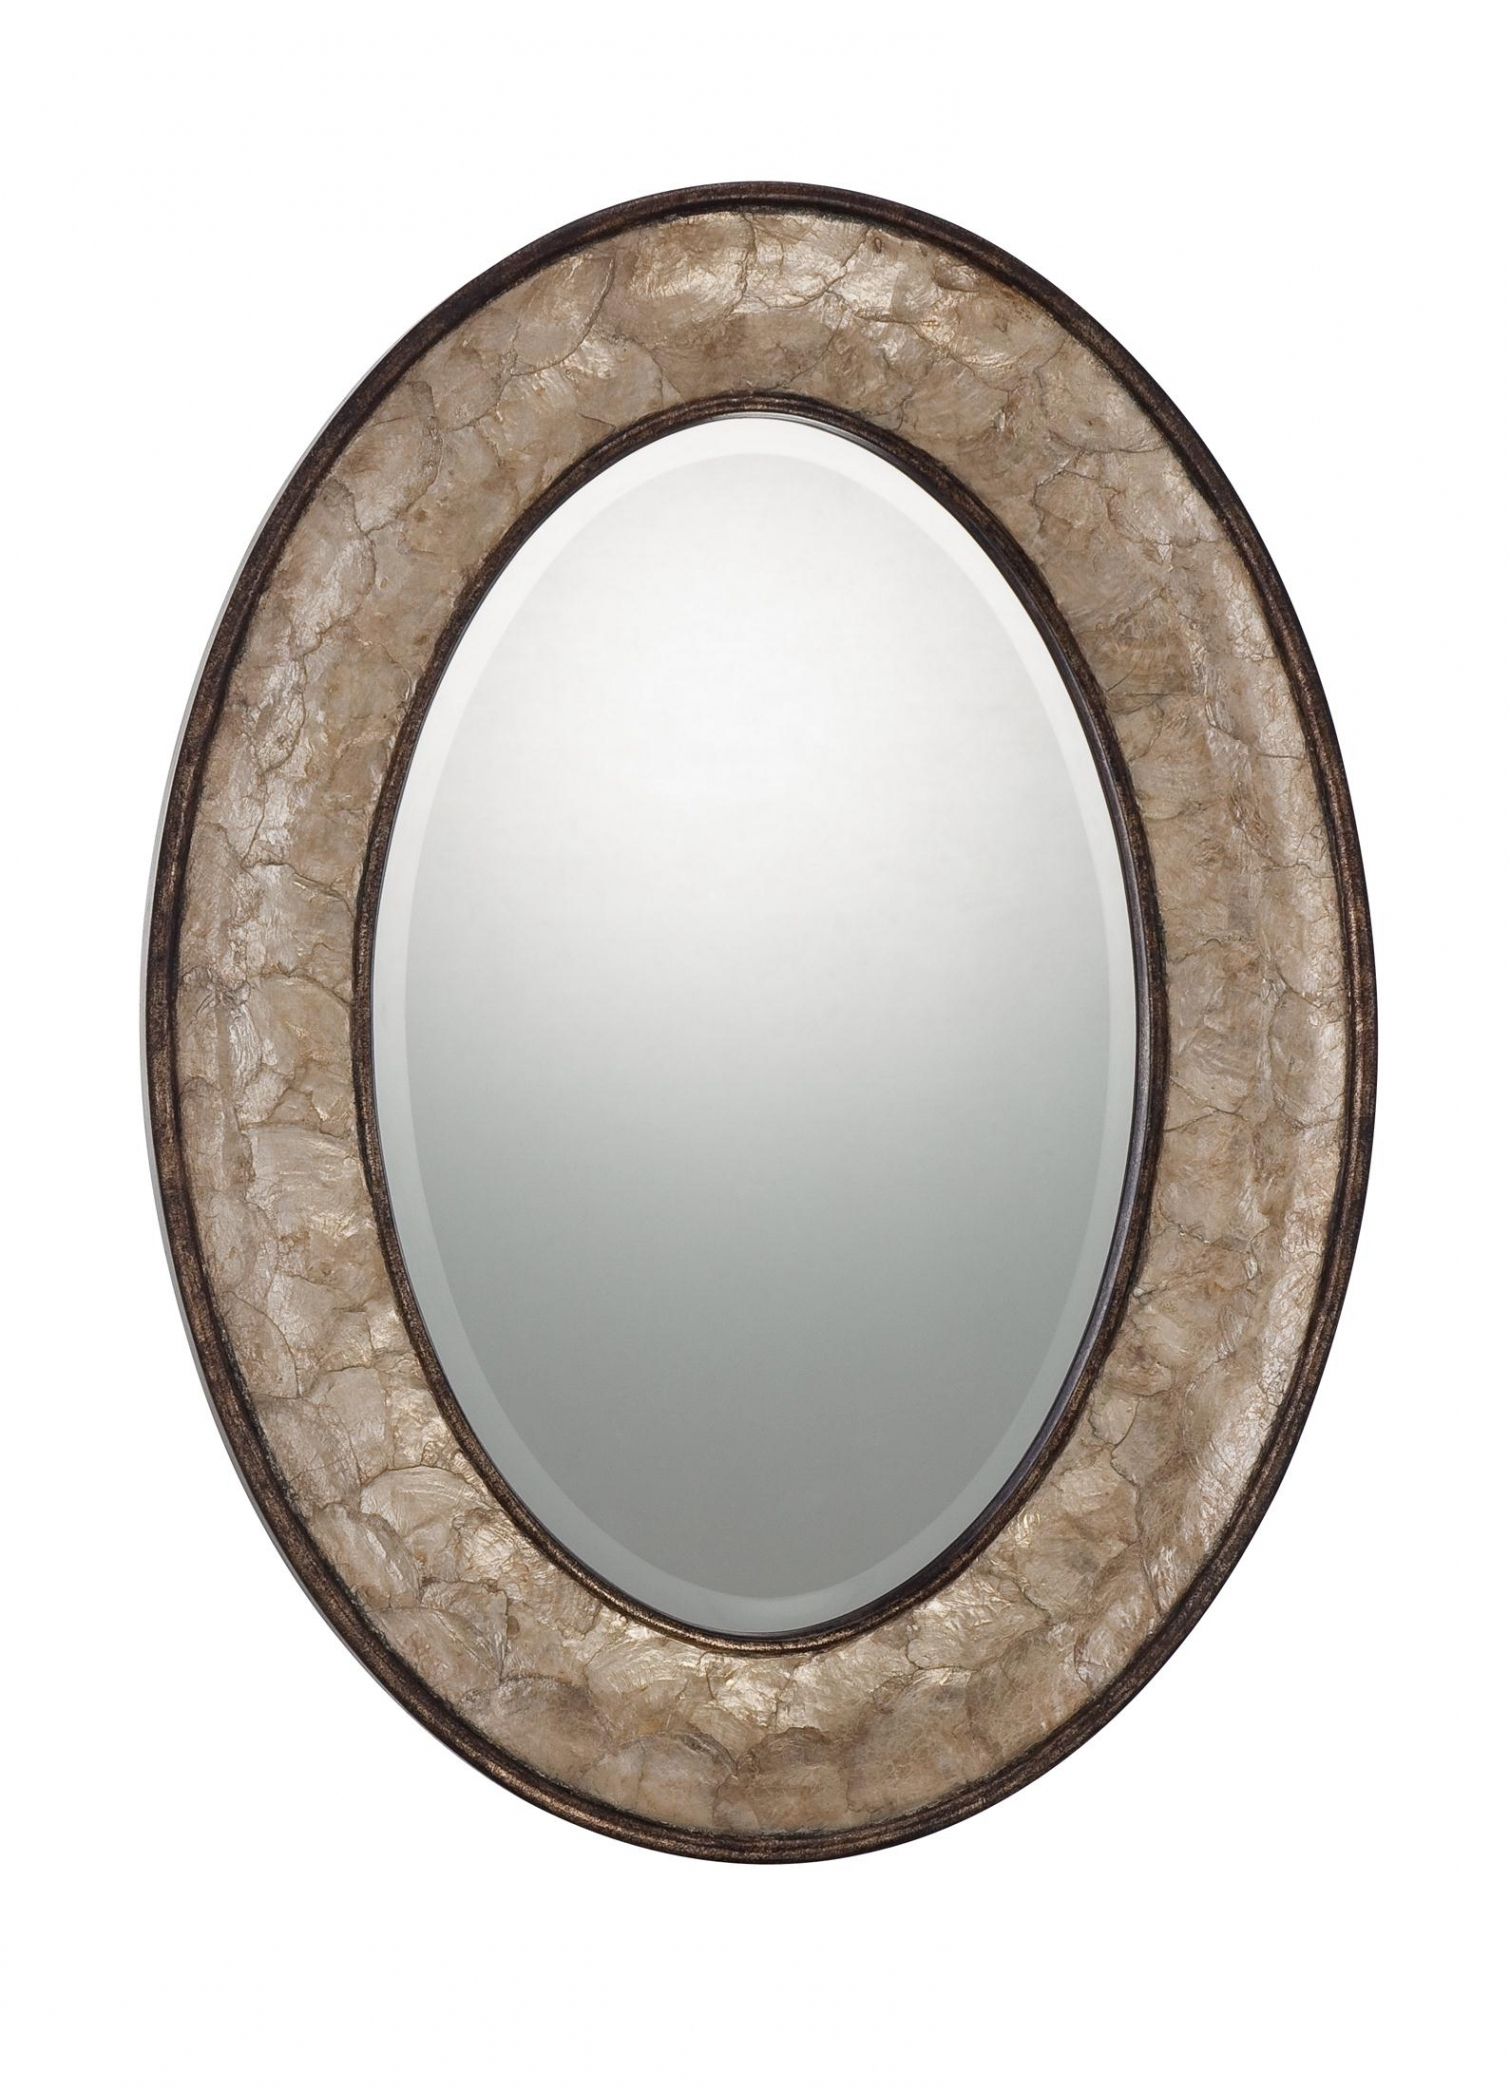 Oval Wall Mirrors 270 Kitchen Bathroom Frameless Vanity Throughout Oval Mirrors For Walls (Image 11 of 15)